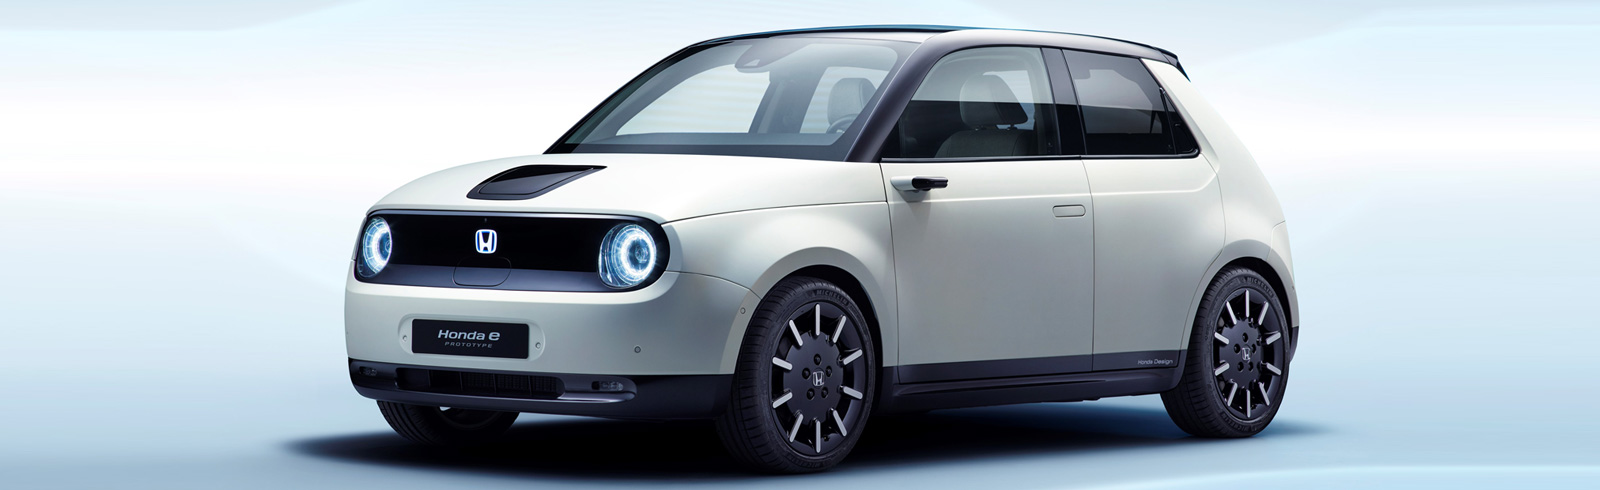 Honda's first BEV for Europe will be dubbed Honda e